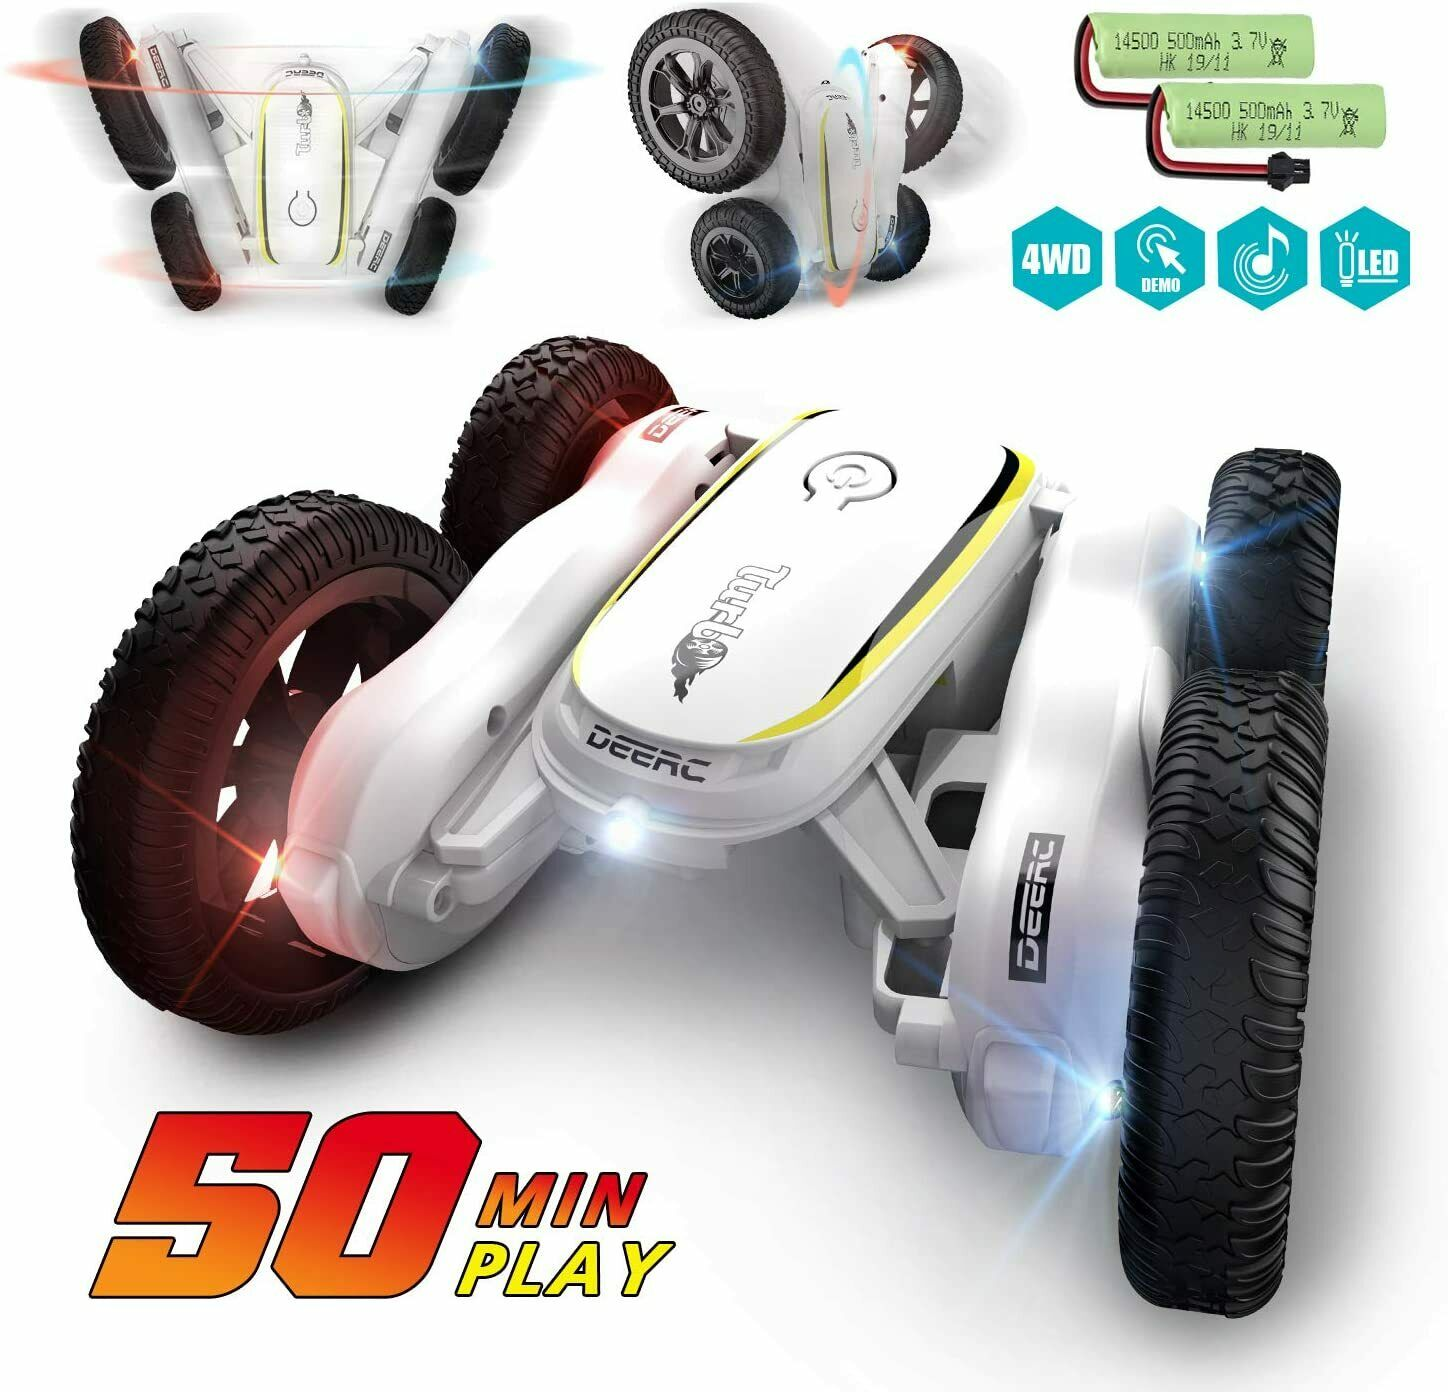 Jjrc D828 Remote Control 360 Spin Toy Car 2 4g 4wd Double Sided Stunt Rc Car For Sale Online Ebay